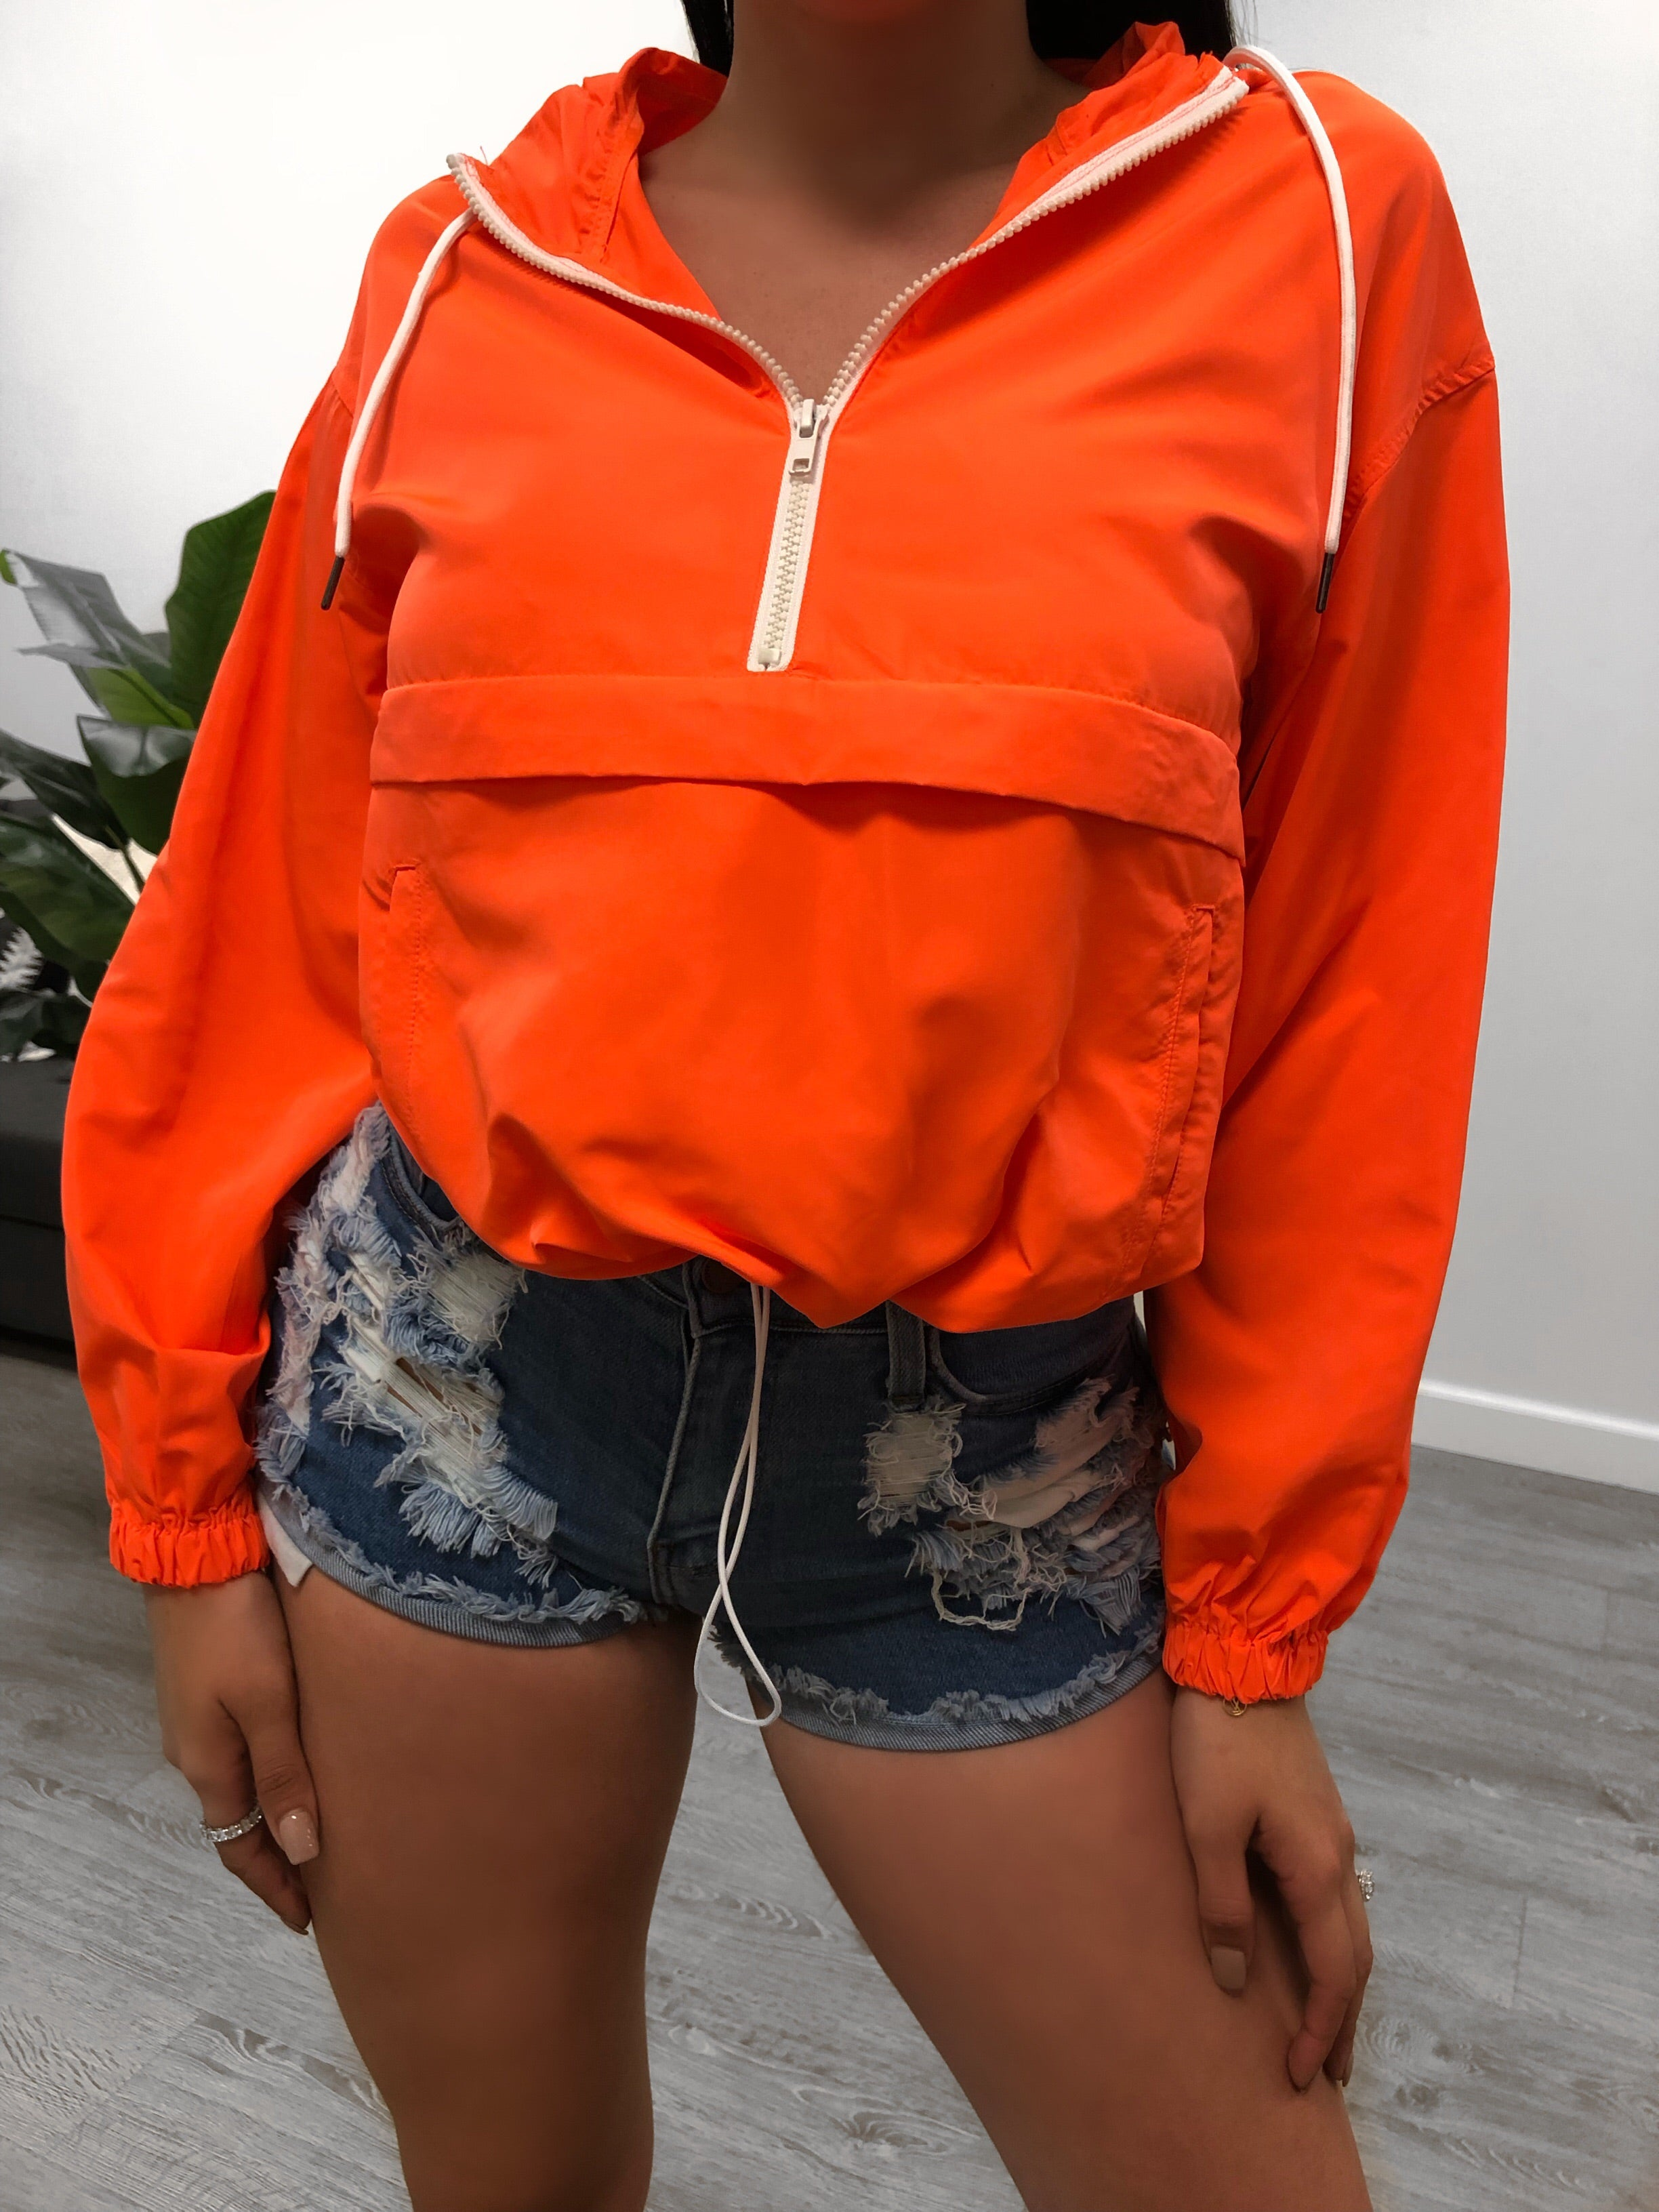 neon orange loose fit jacket, zipper in the front that goes from top of stomach to neck, has zipper pocket in the front, also has hoodie